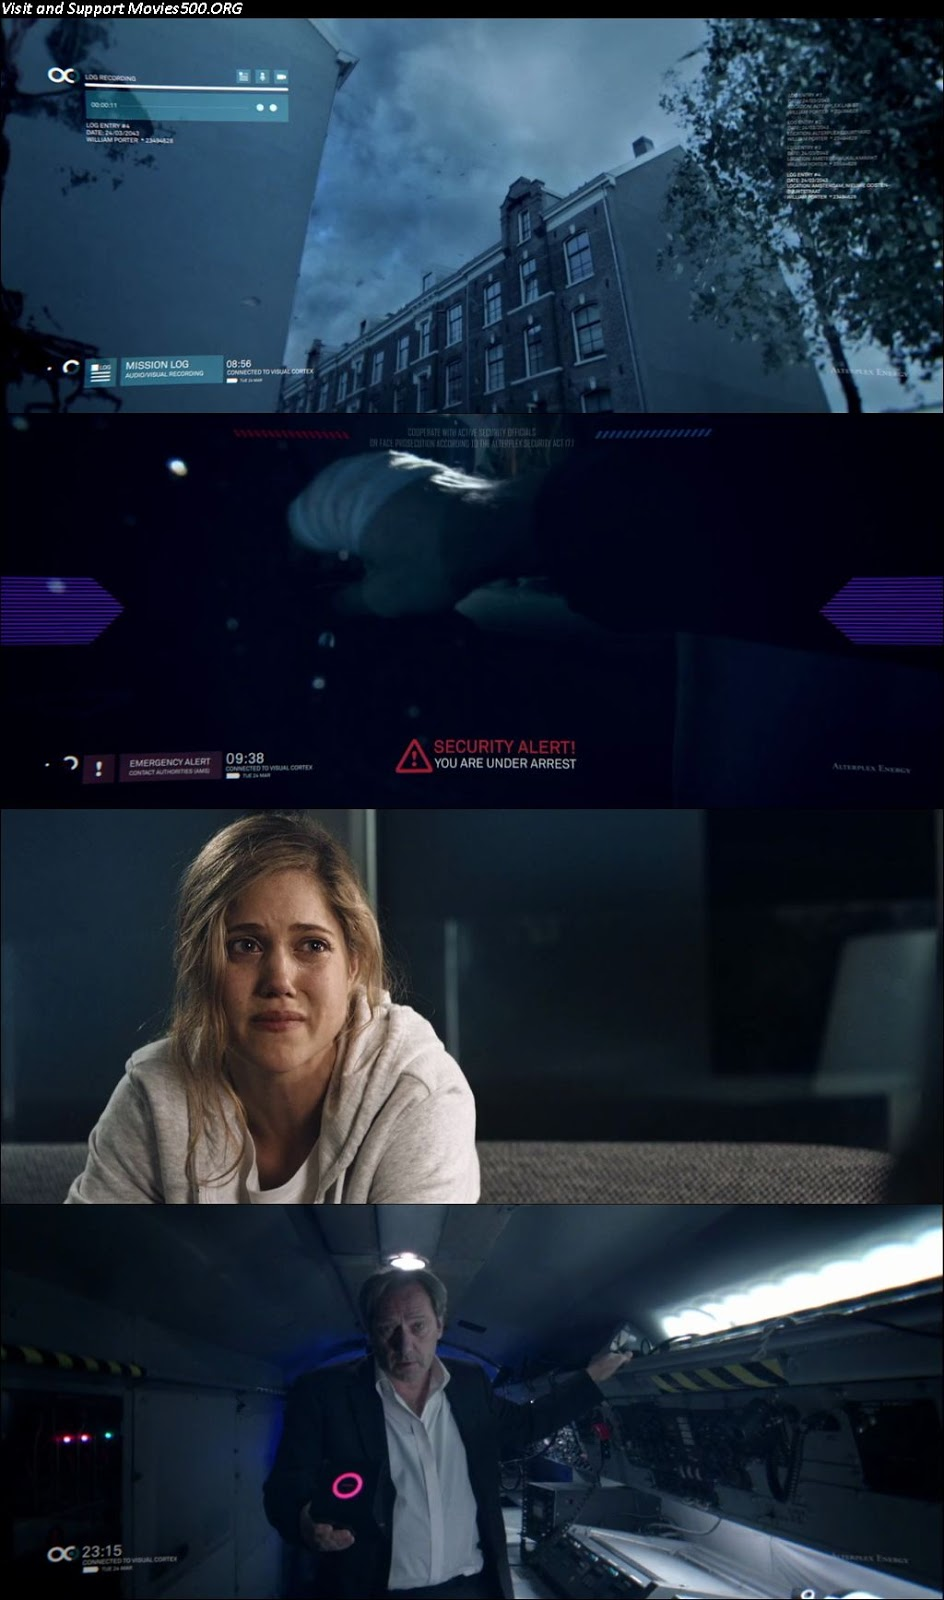 Kill Switch 2017 Hollywood 300MB Full Movie Download 480P at oprbnwjgcljzw.com